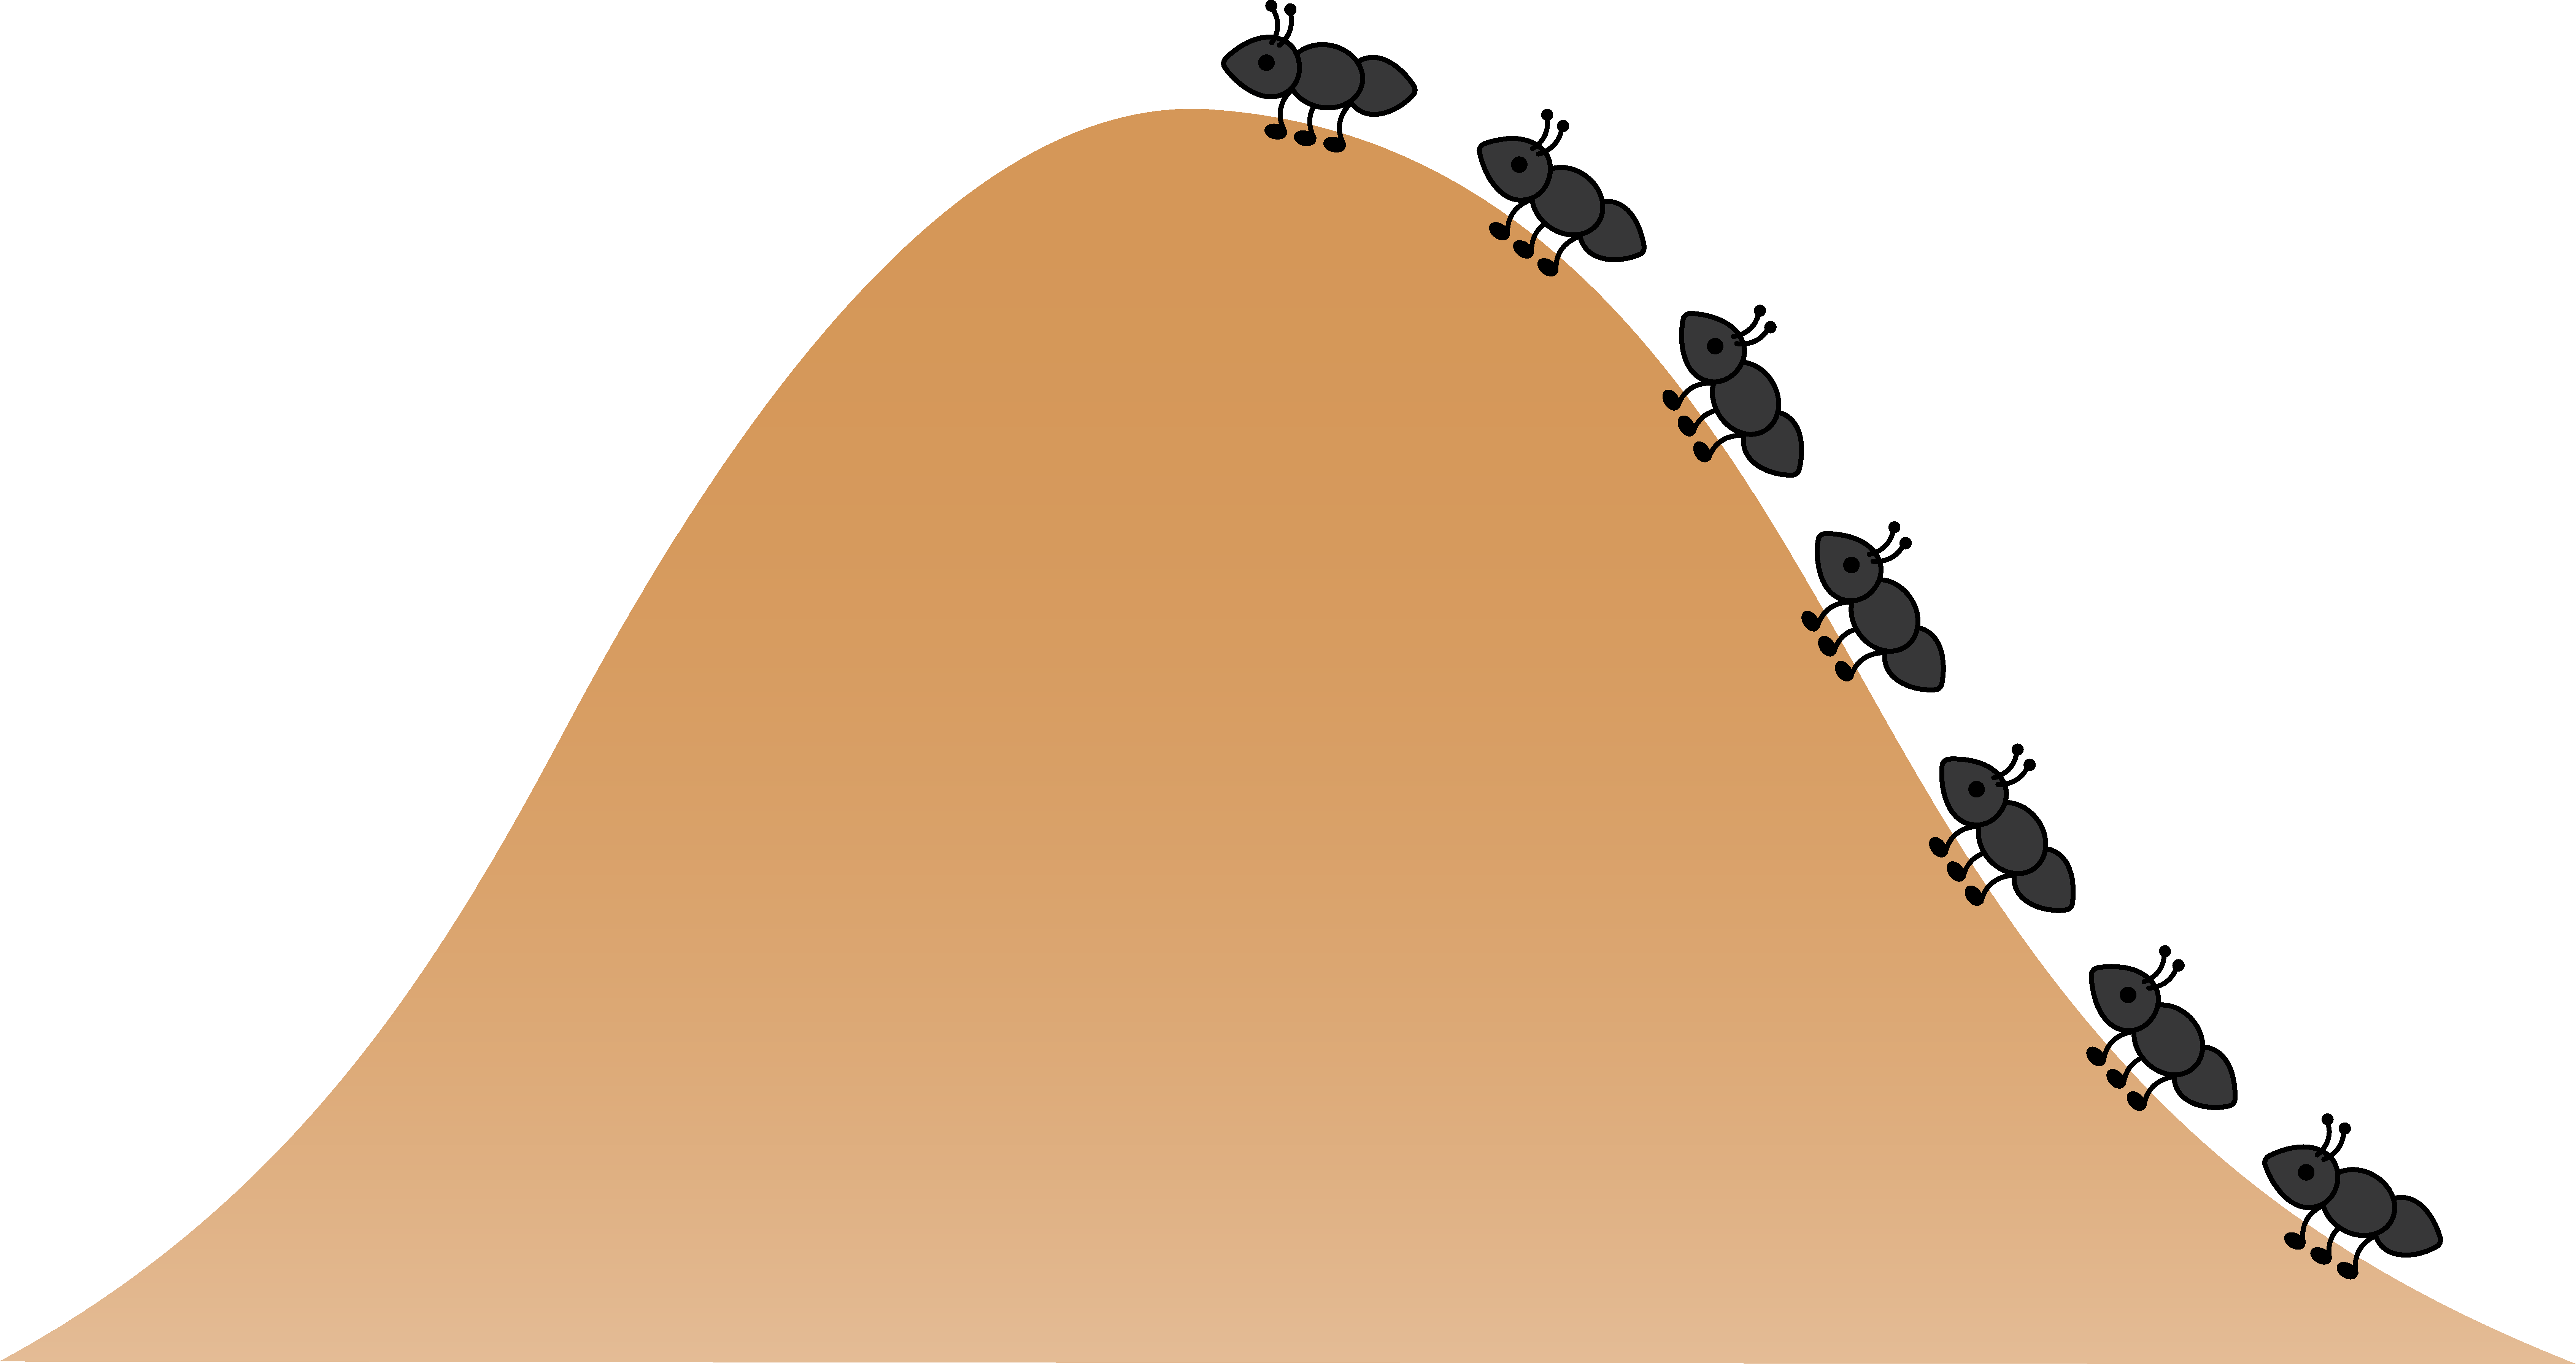 Cartoon Ant Hill Png - Ant Hill Clipart